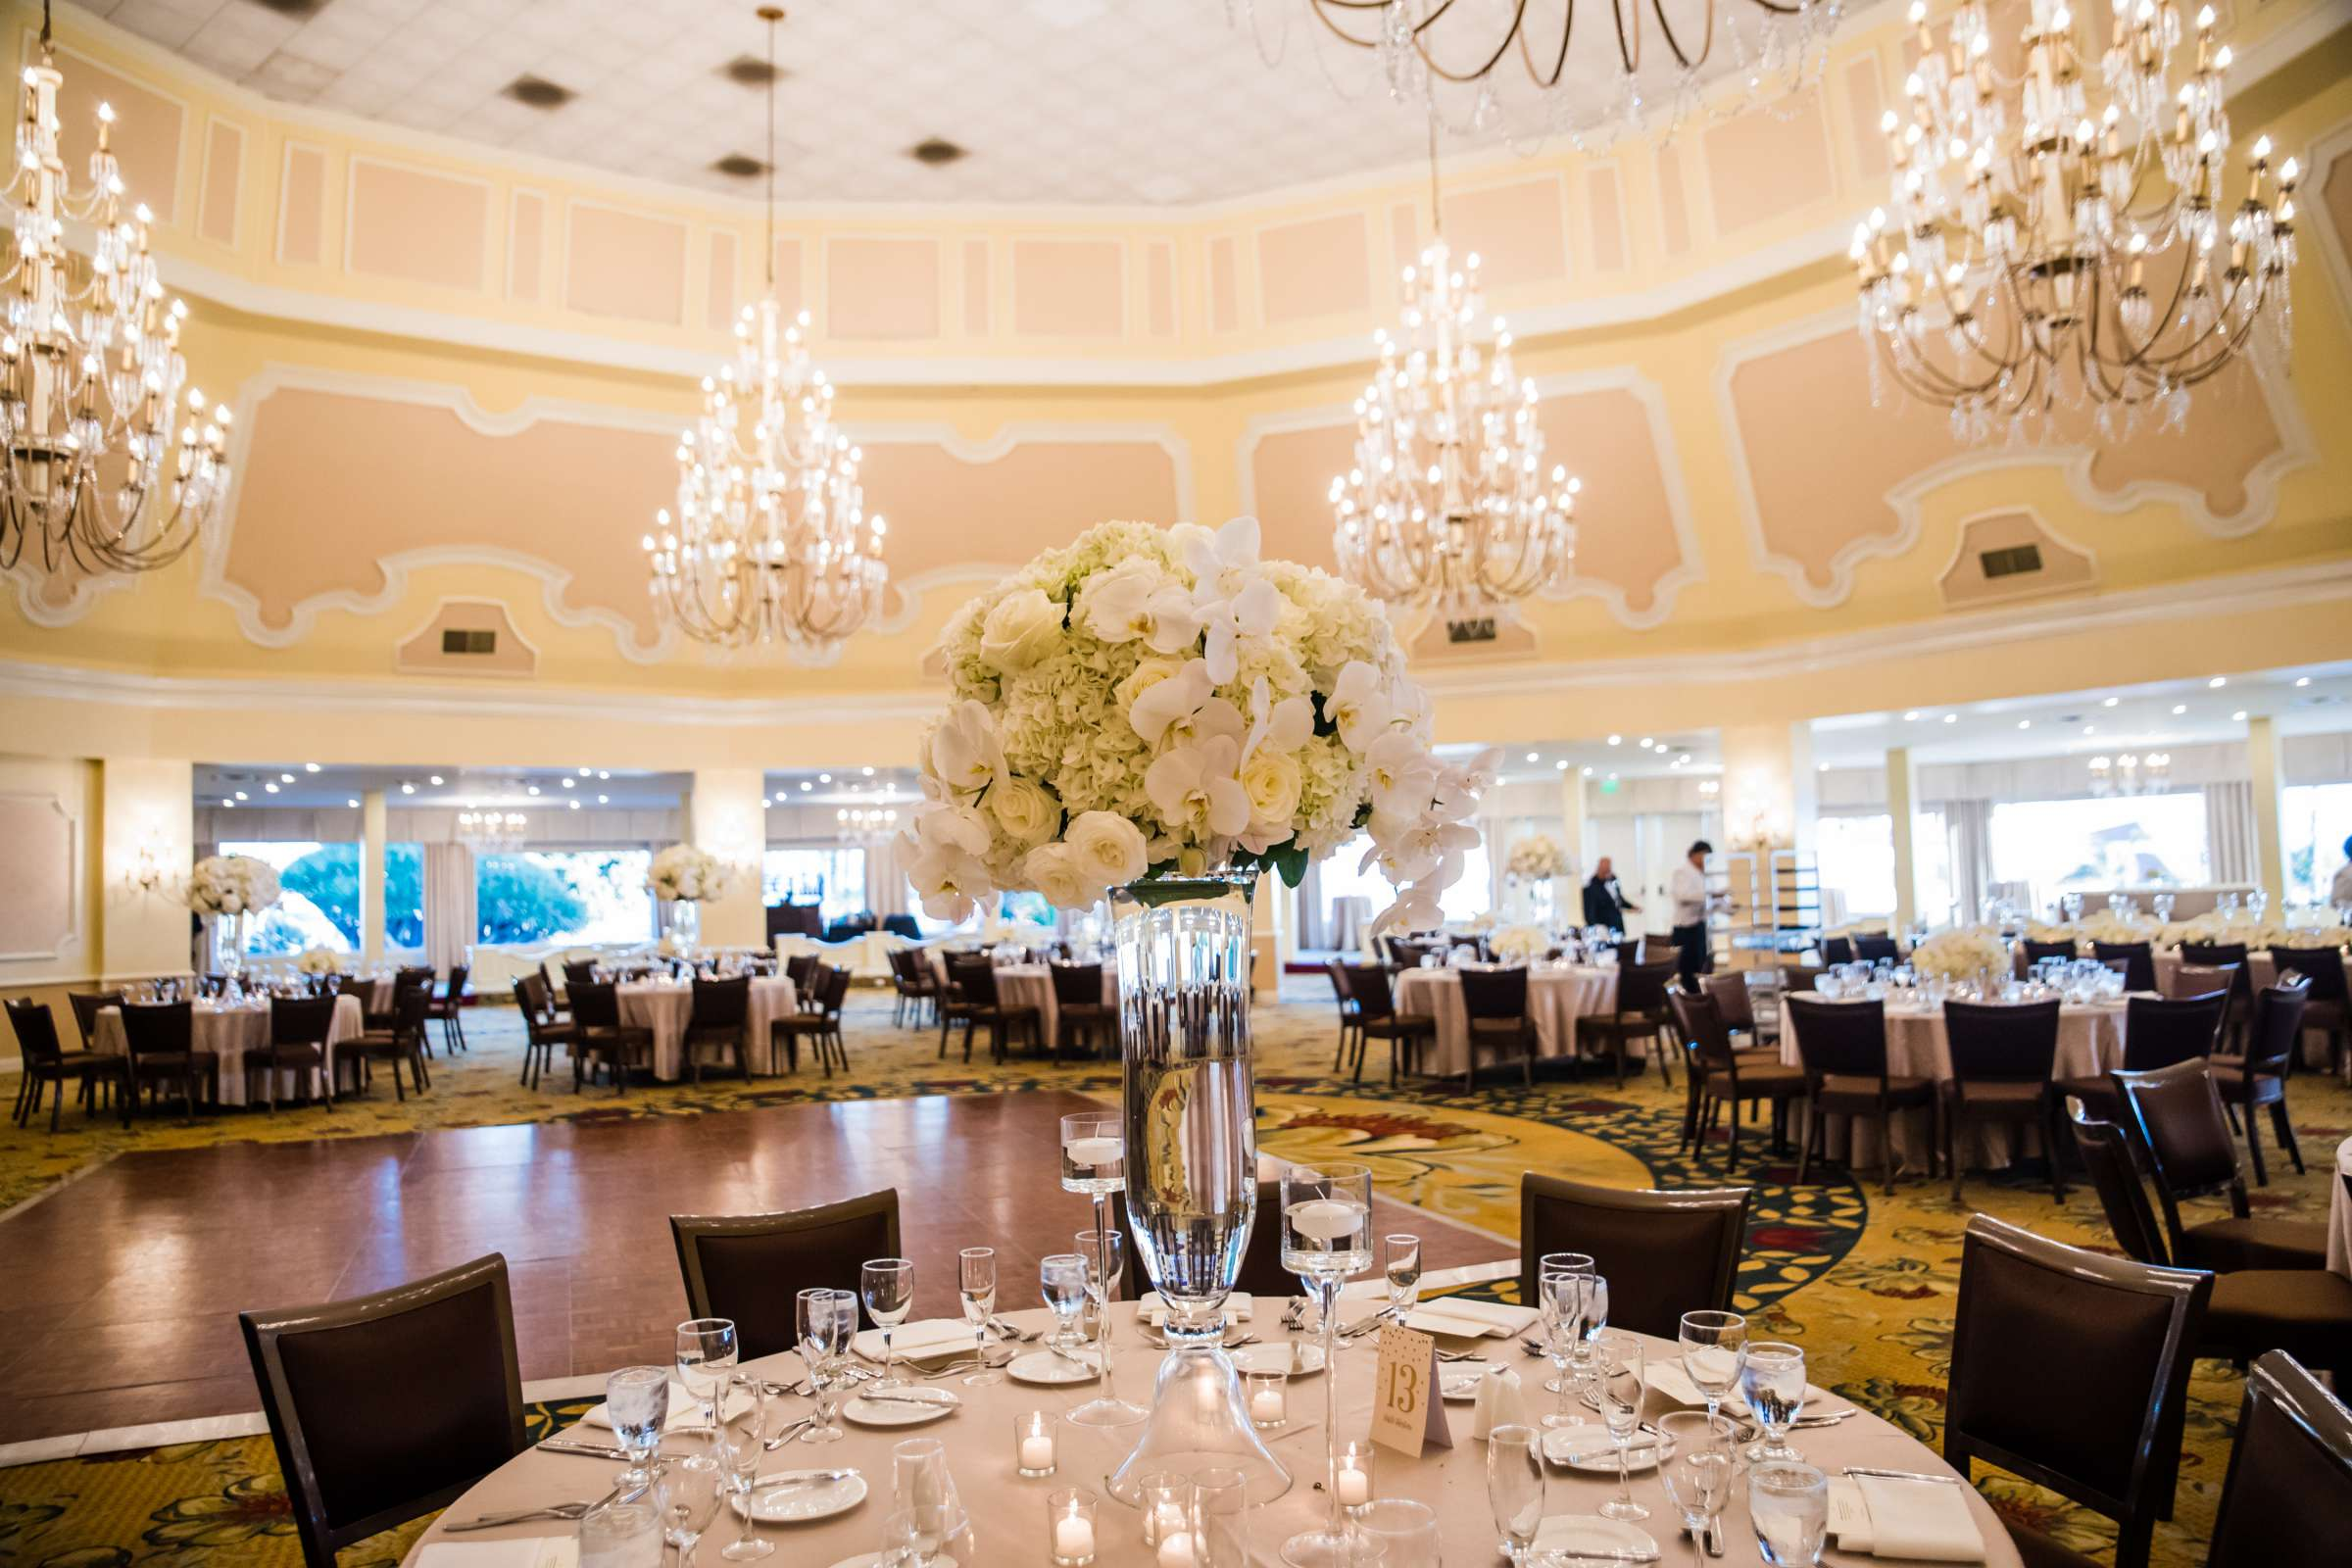 Hotel Del Coronado Wedding coordinated by Creative Affairs Inc, Diane and Paul Wedding Photo #131 by True Photography